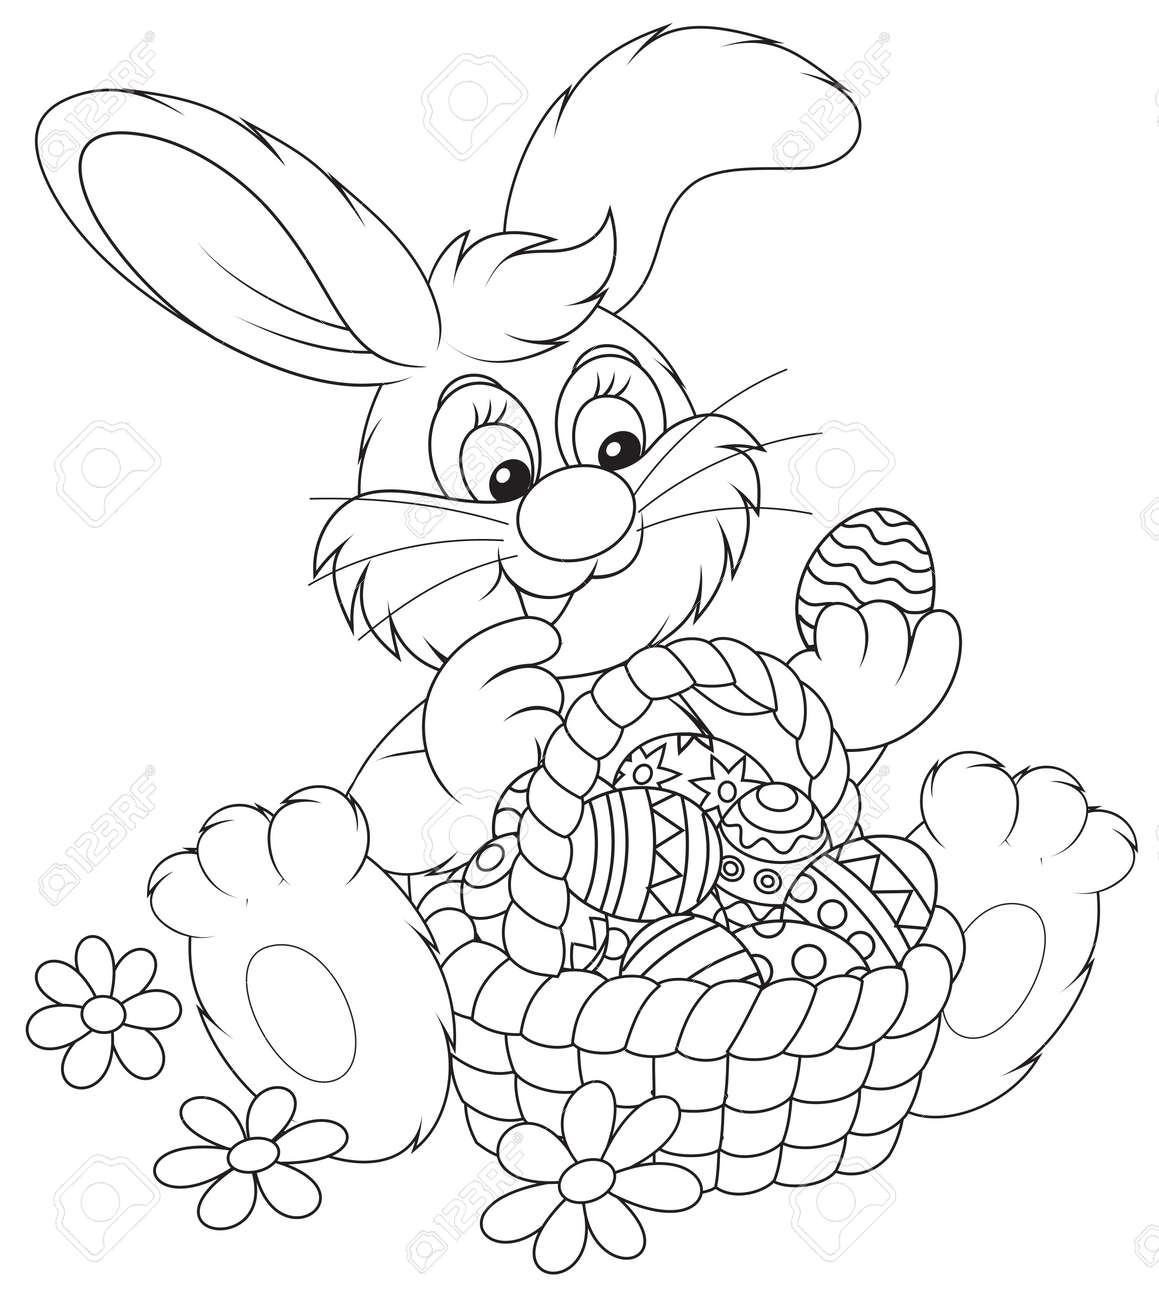 401 easter bunny coloring page cliparts stock vector and royalty